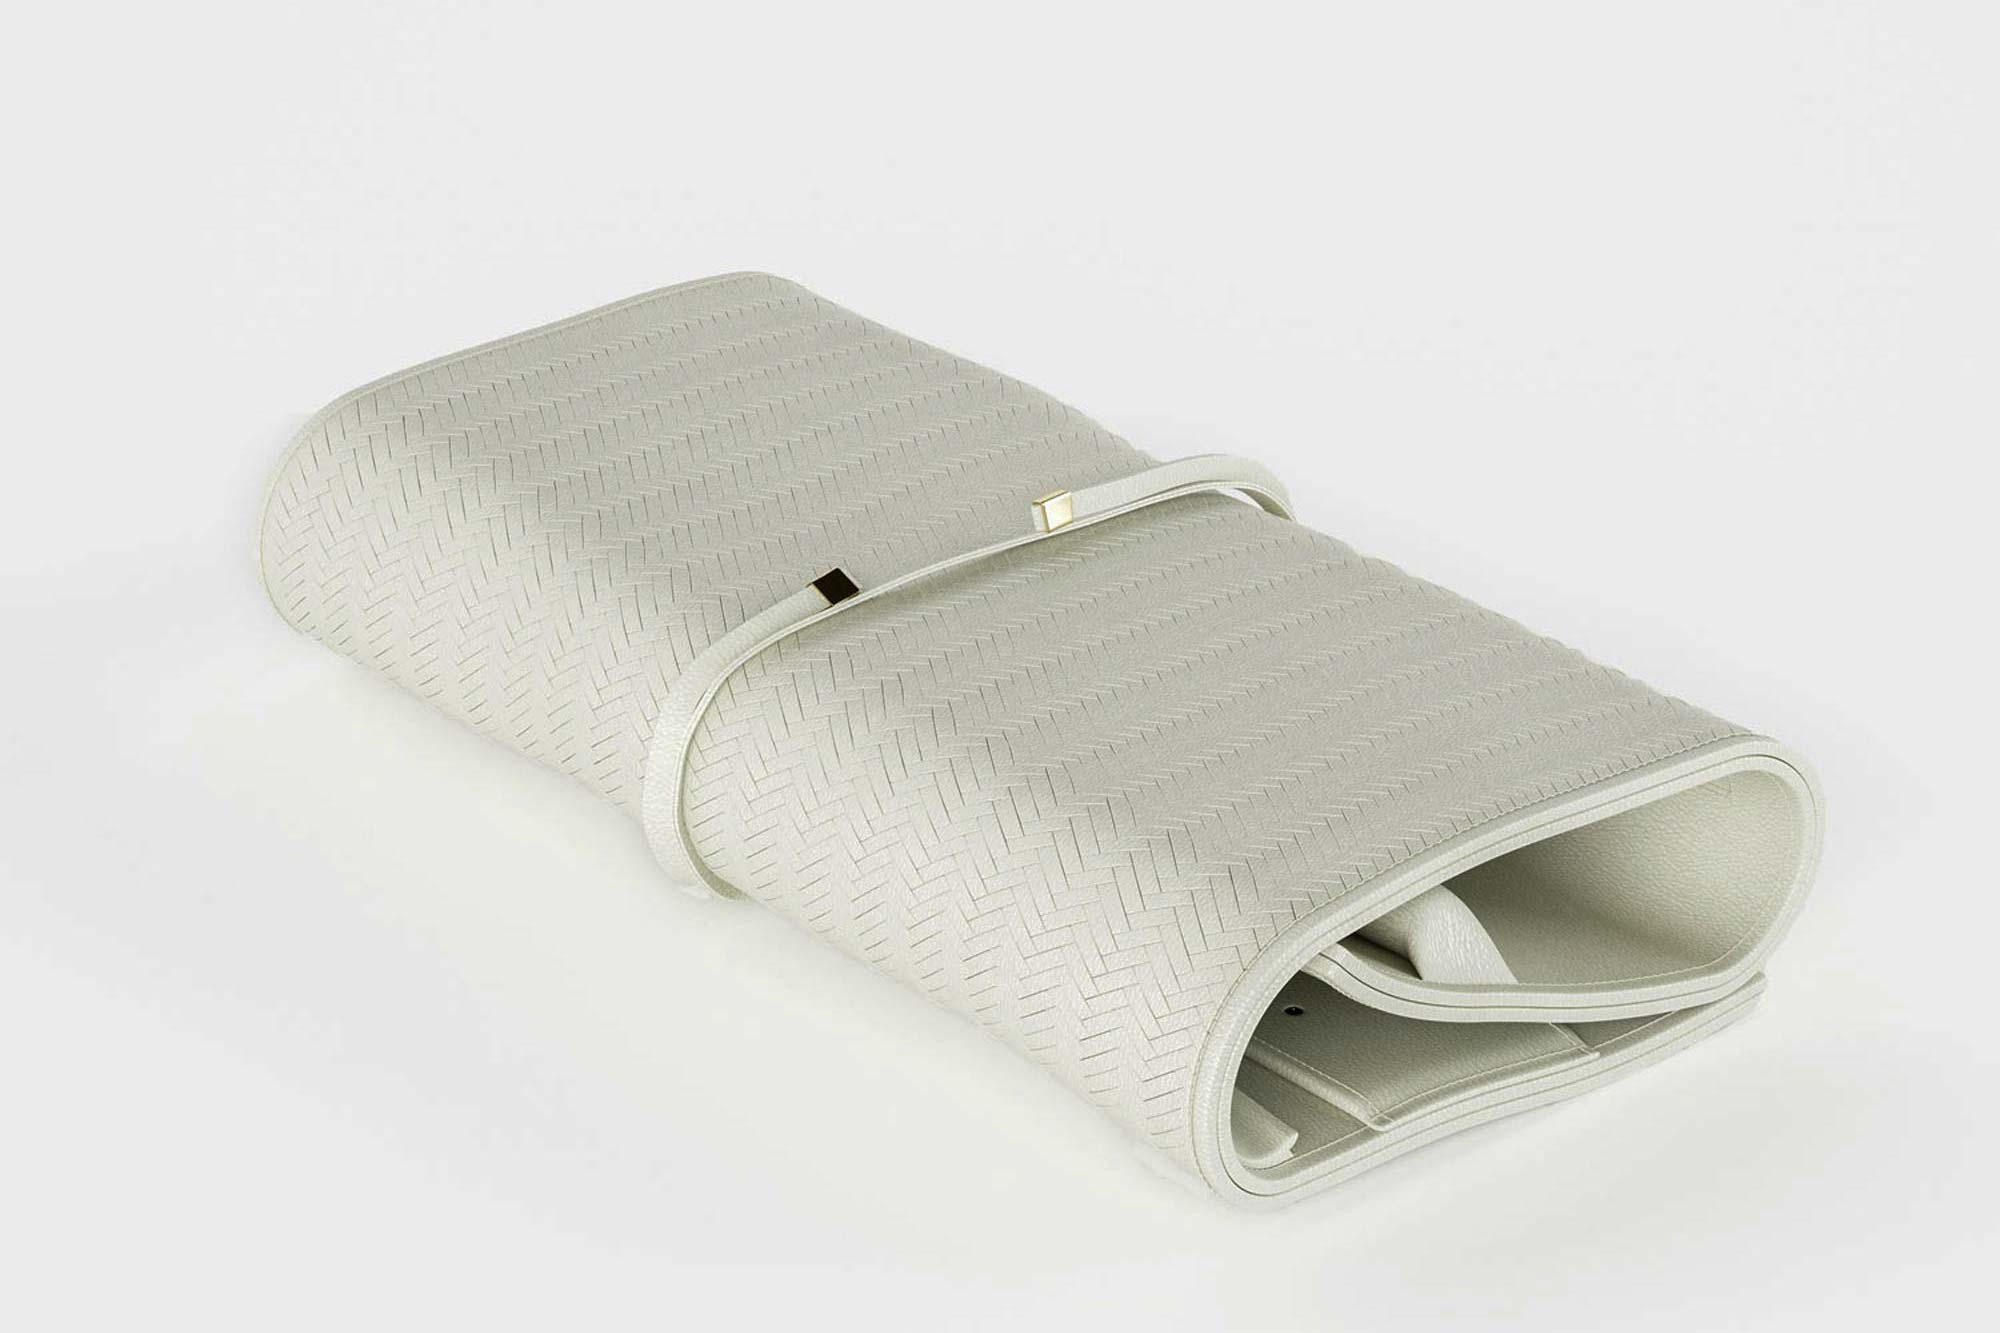 Travel jewellery wallet